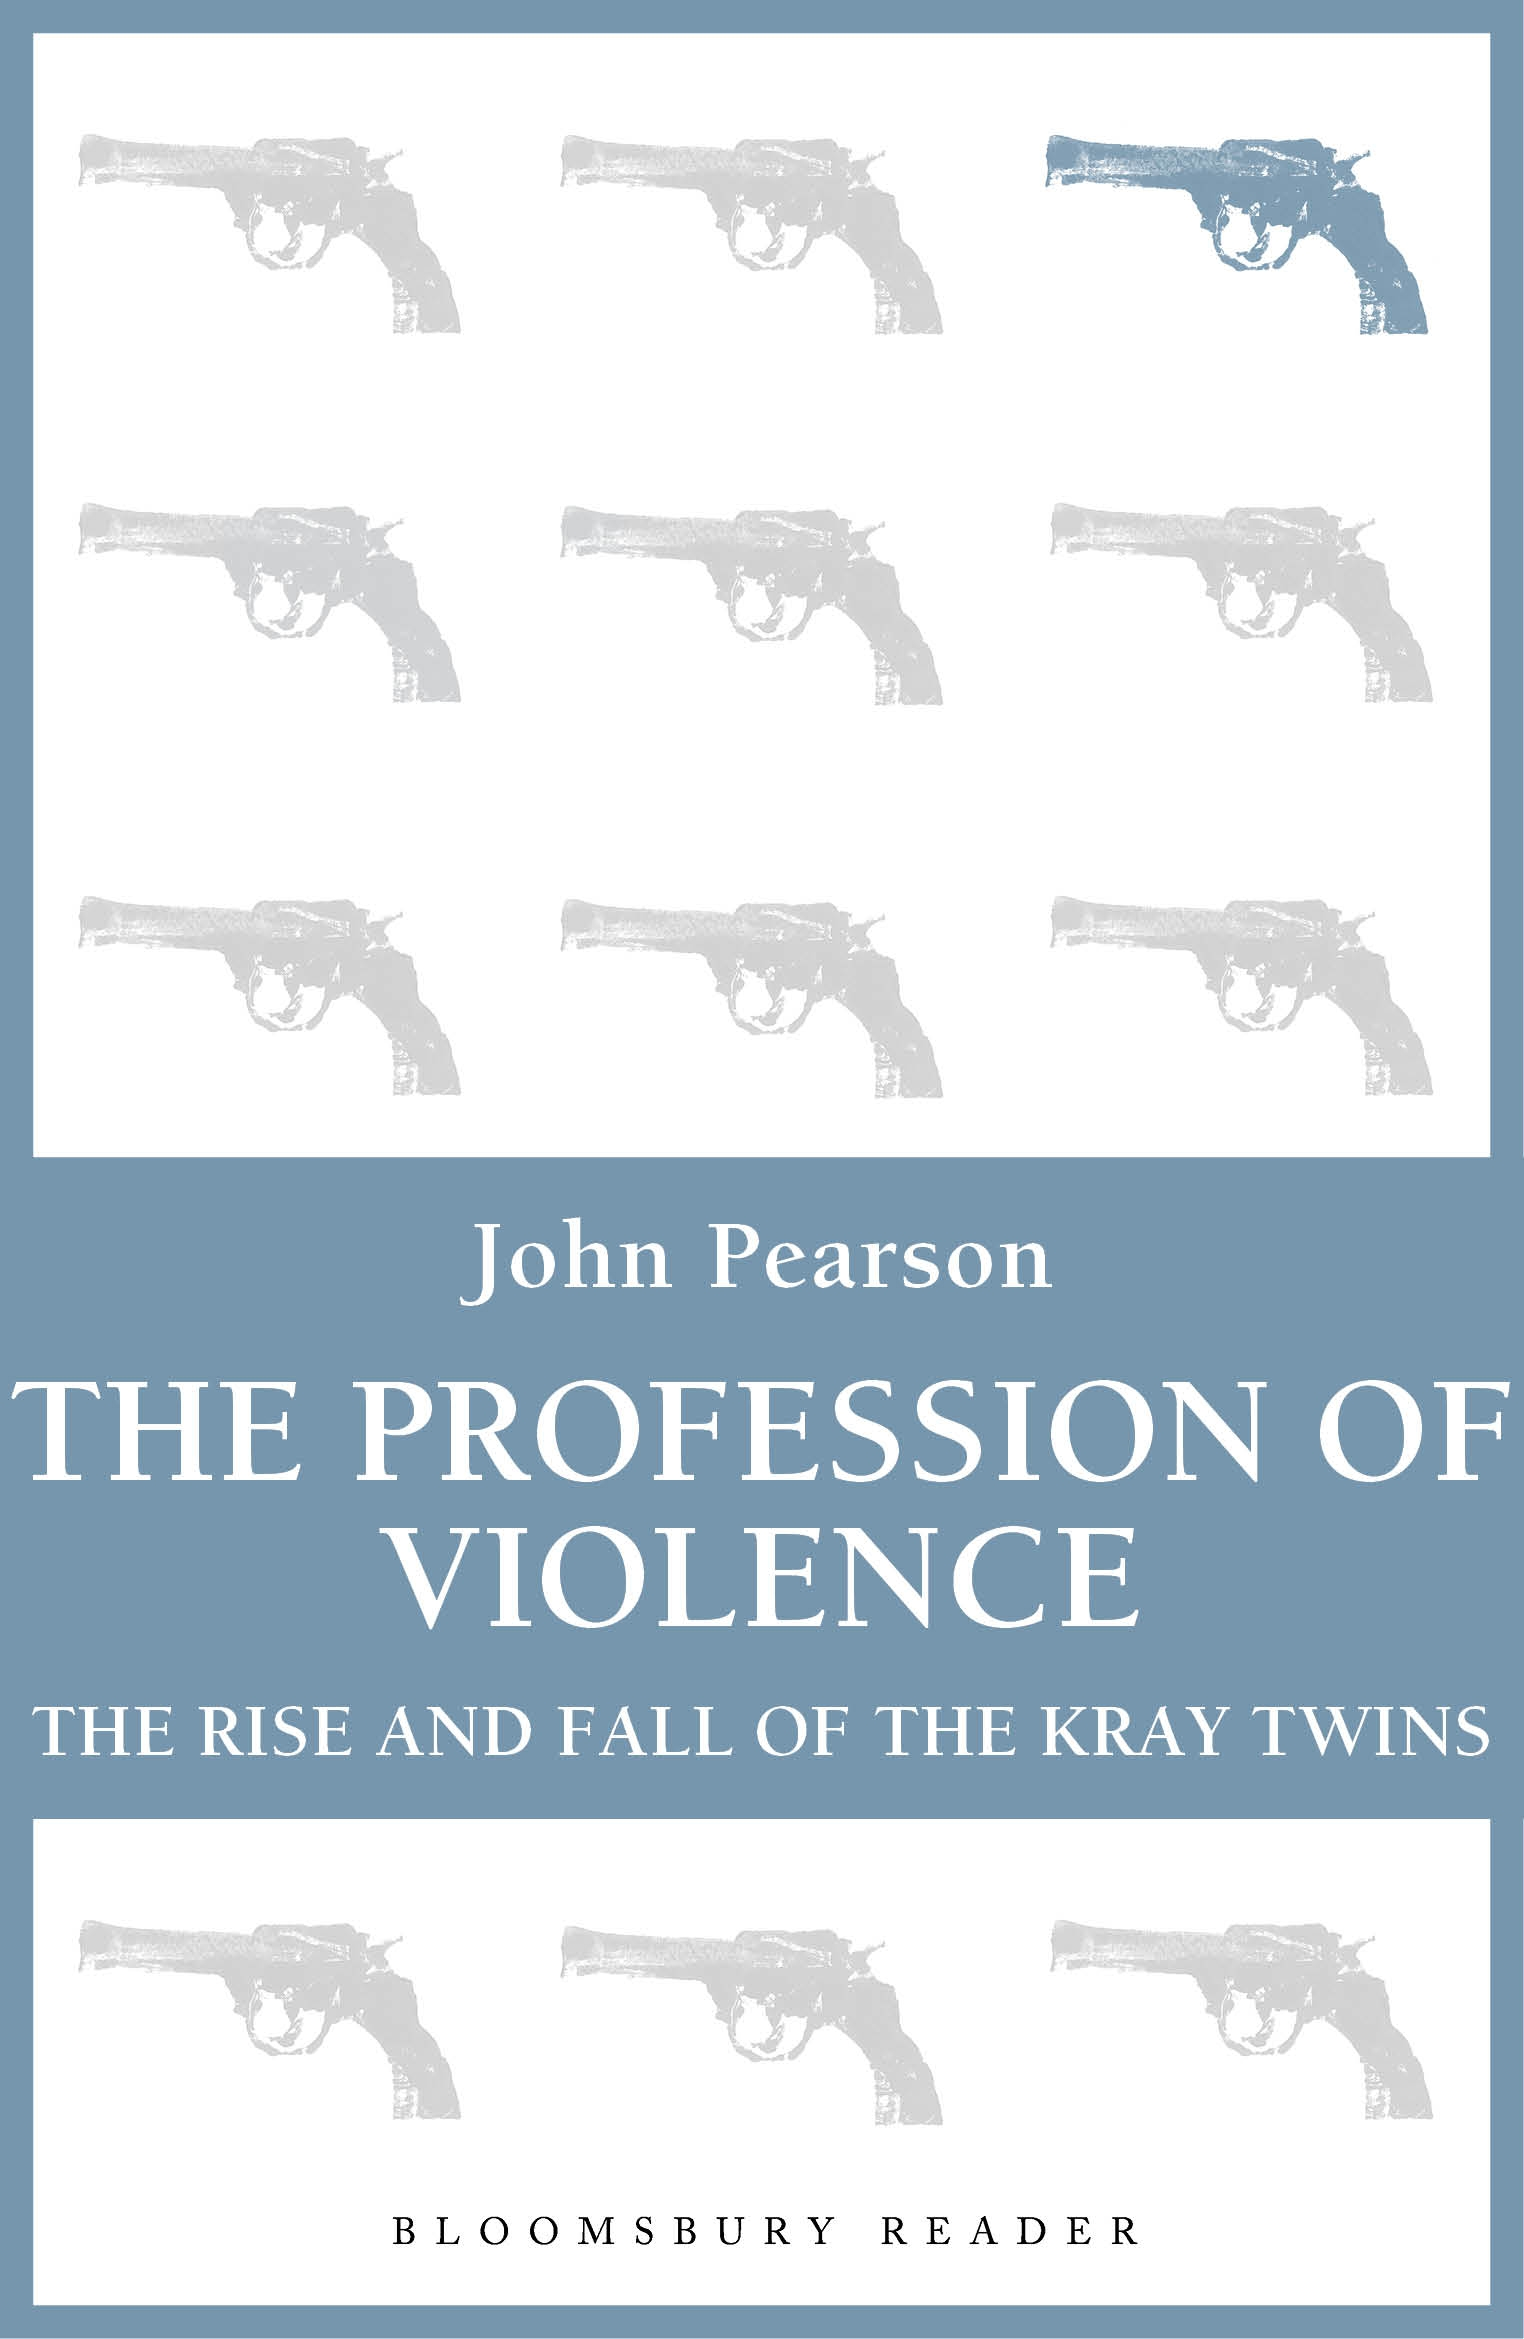 The Profession of Violence The Rise and Fall of the Kray Twins